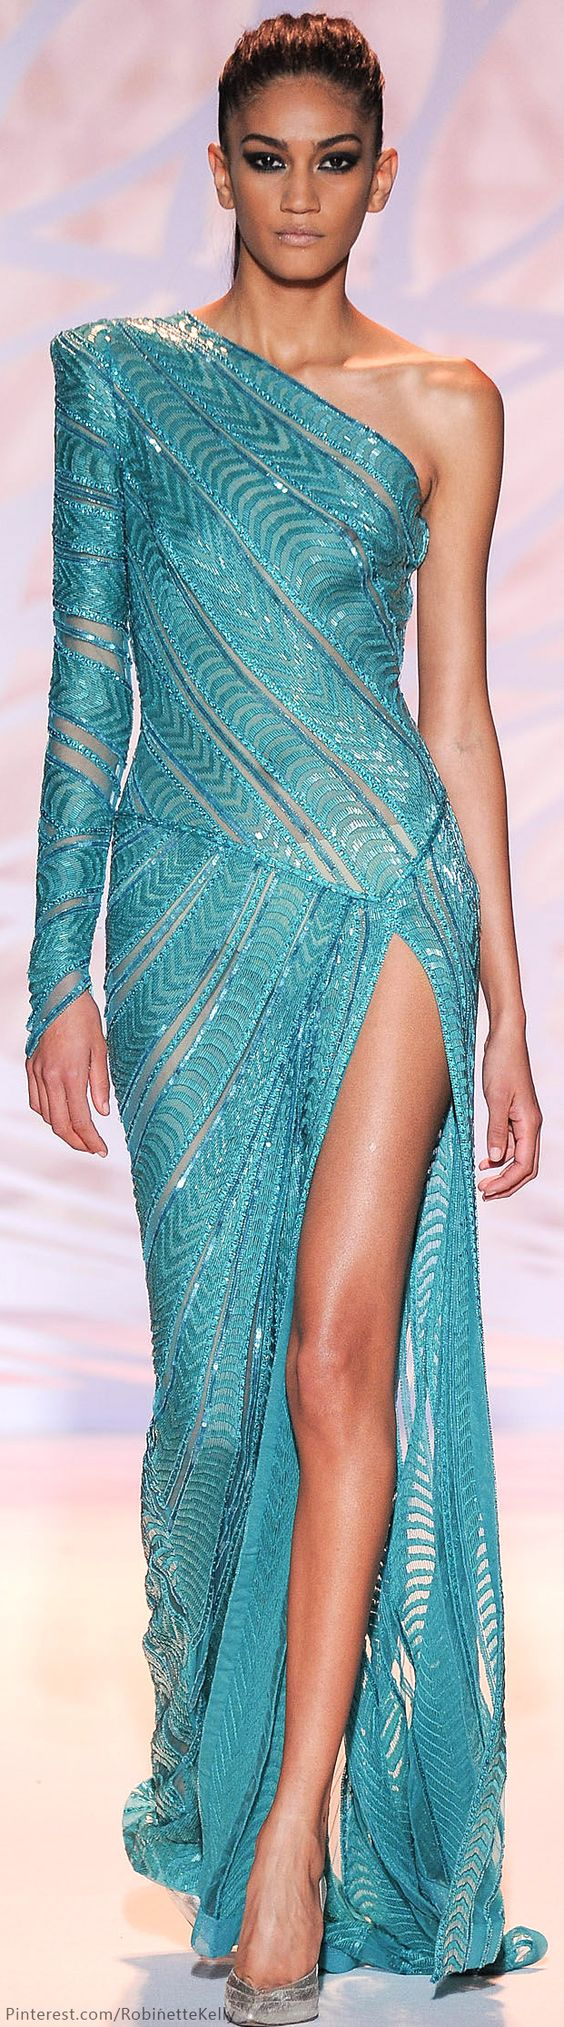 Zuhair Murad Haute Couture | F/W 2015: maxi dress gown @roressclothes closet ideas women fashion outfit clothing style